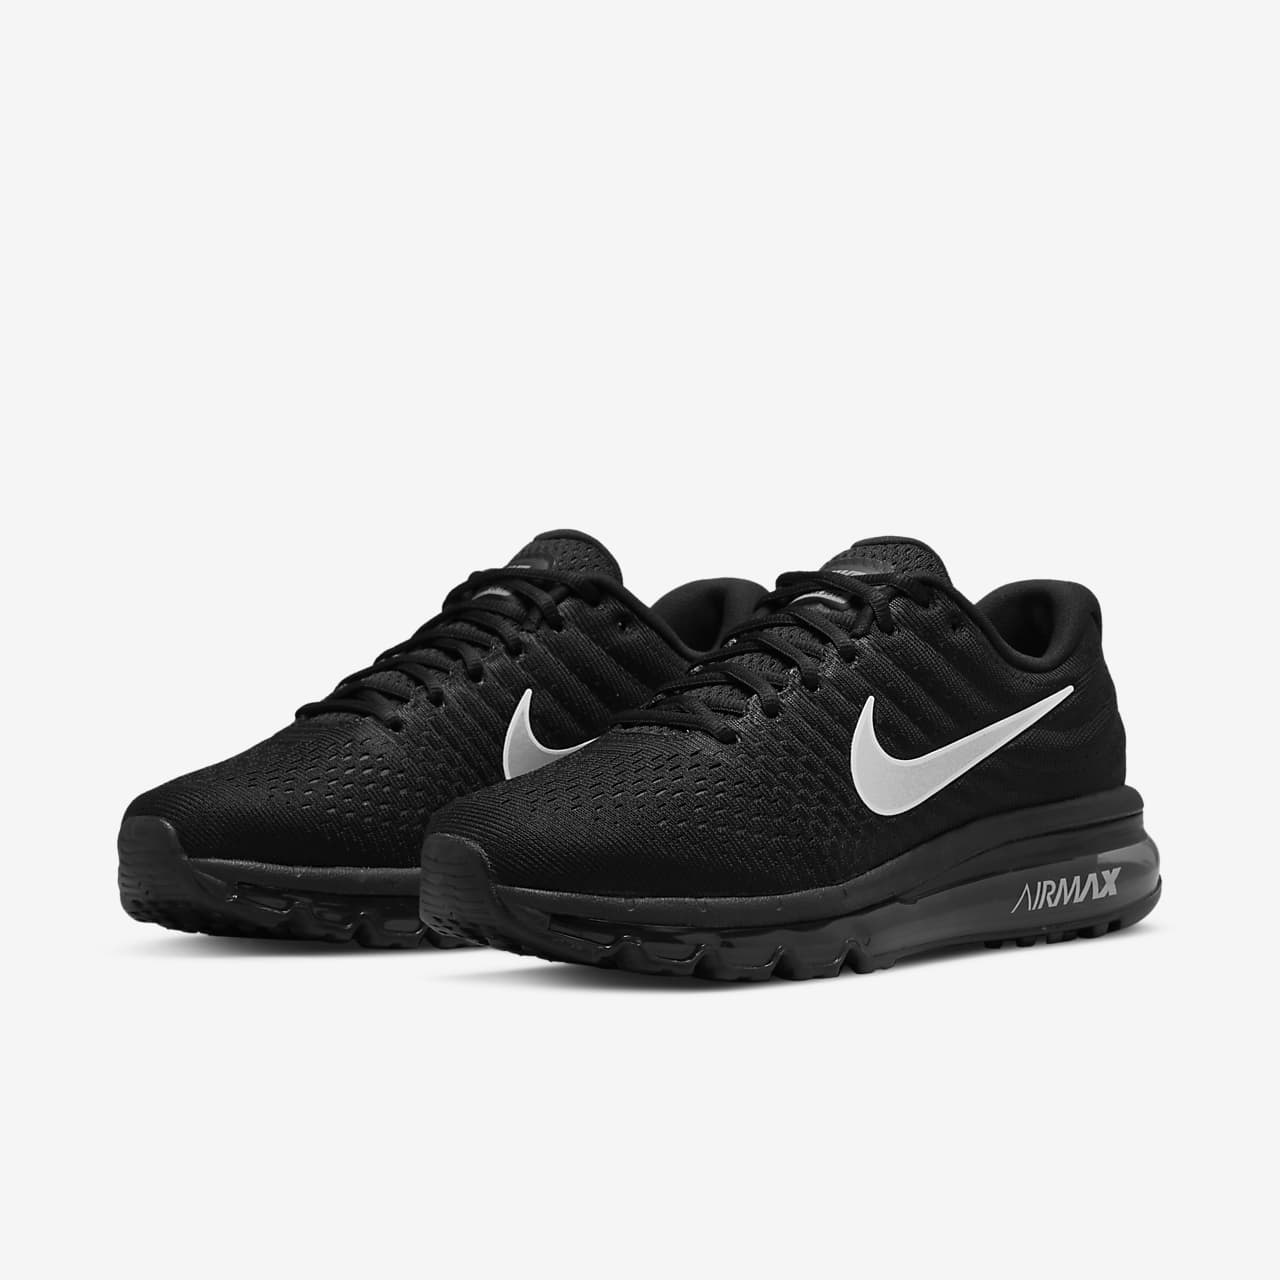 separation shoes adfde eabcb ... Nike Air Max 2017 Women s Shoe